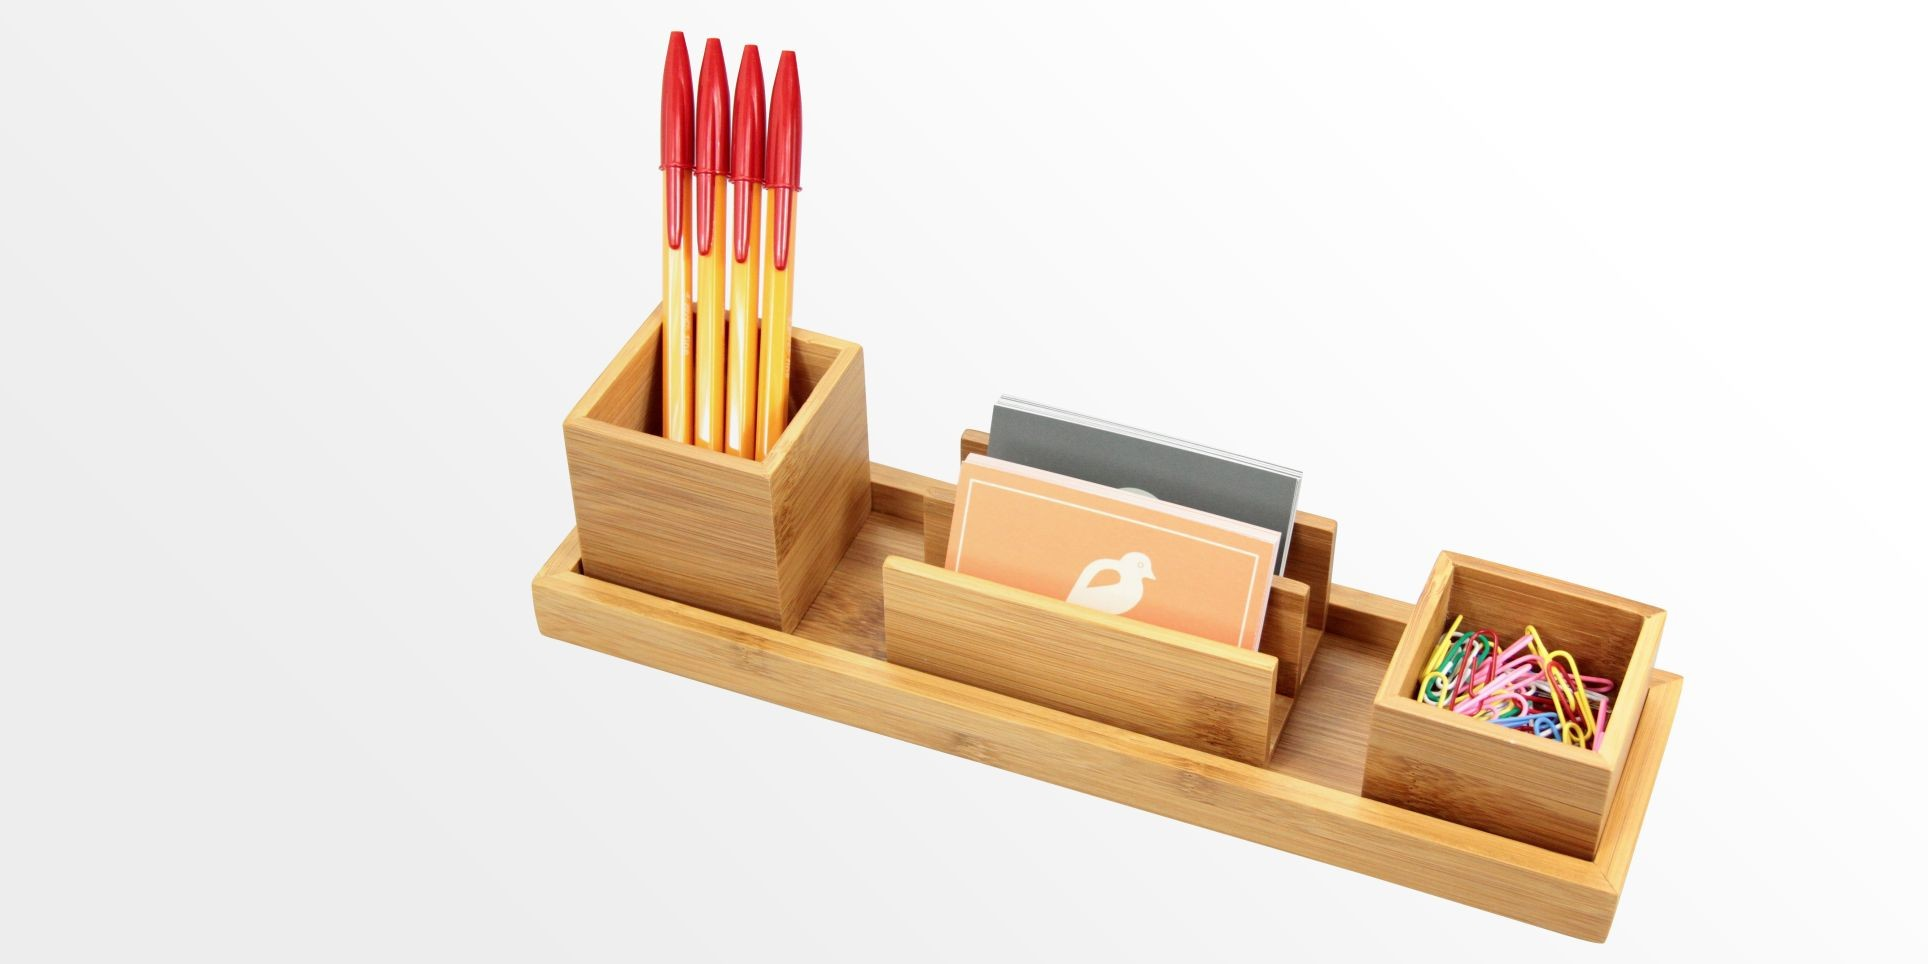 Desk Organiser Stationery Desk Organiser Set Of 4 Pcs Bamboo Stationery Organiser